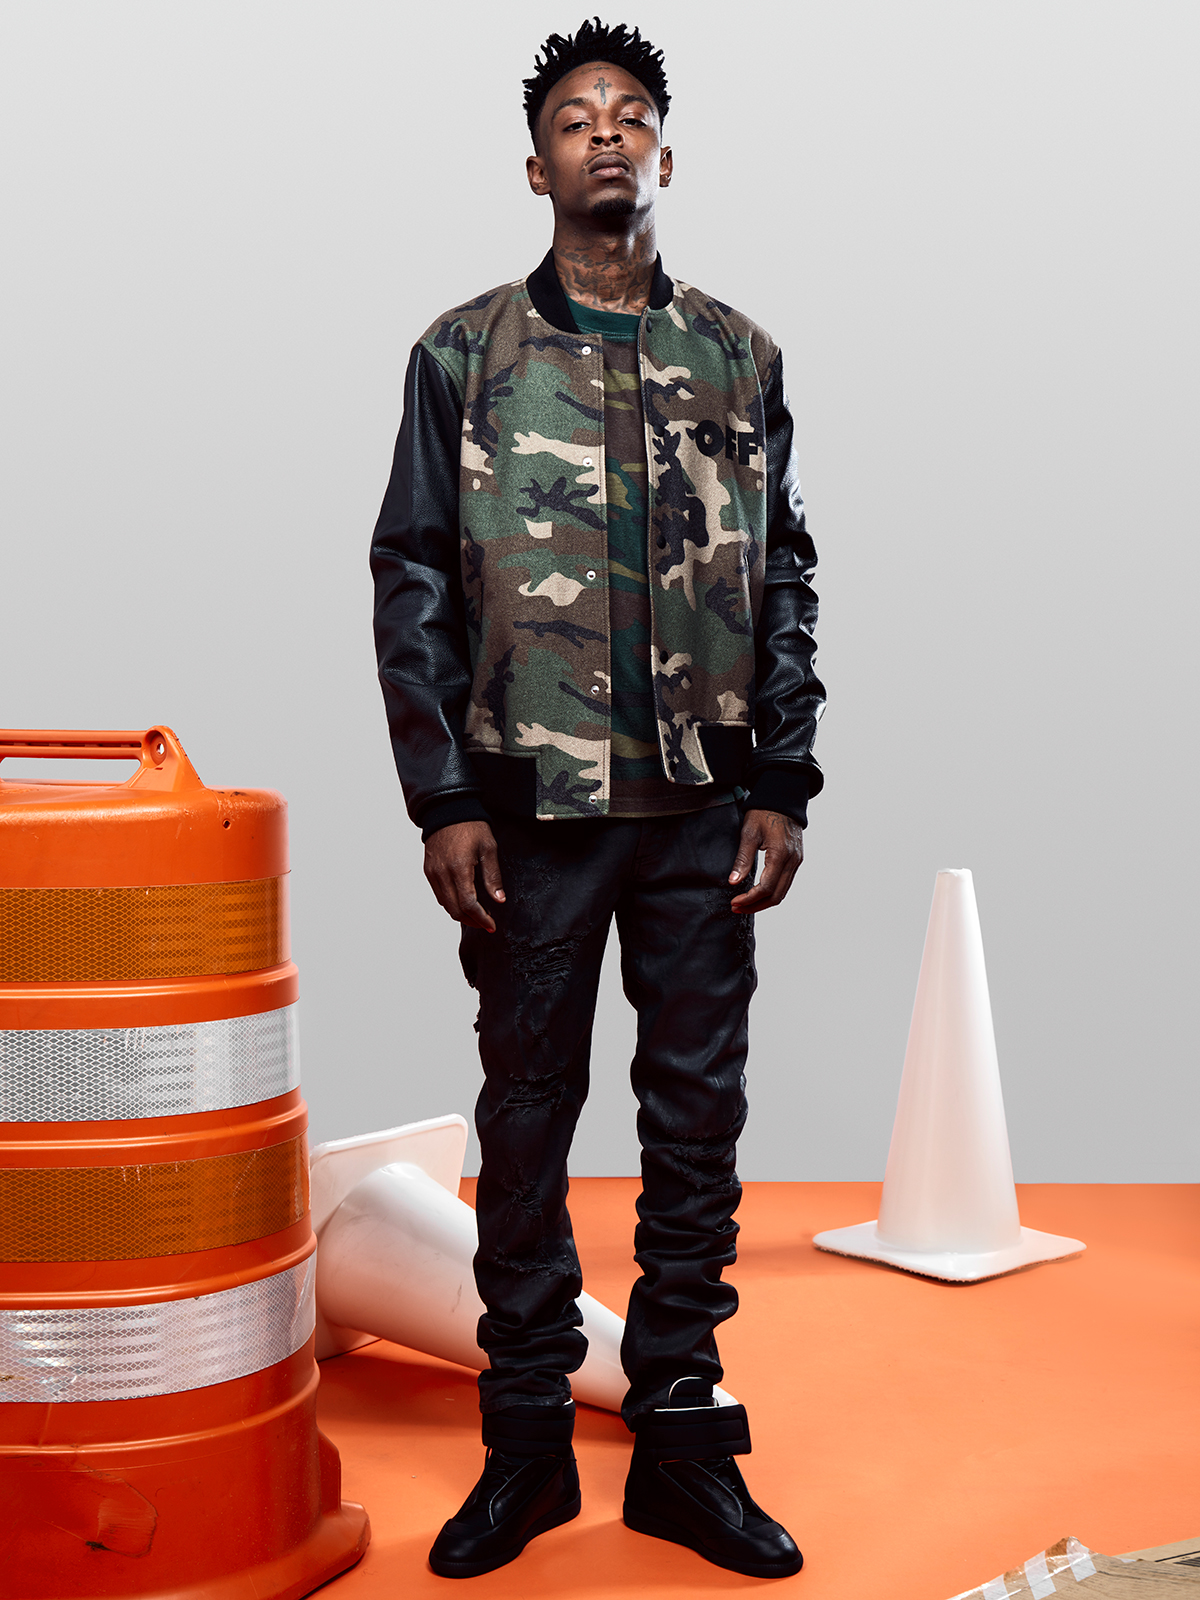 Custom All Stars >> 21 Savage Images HD | Full HD Pictures